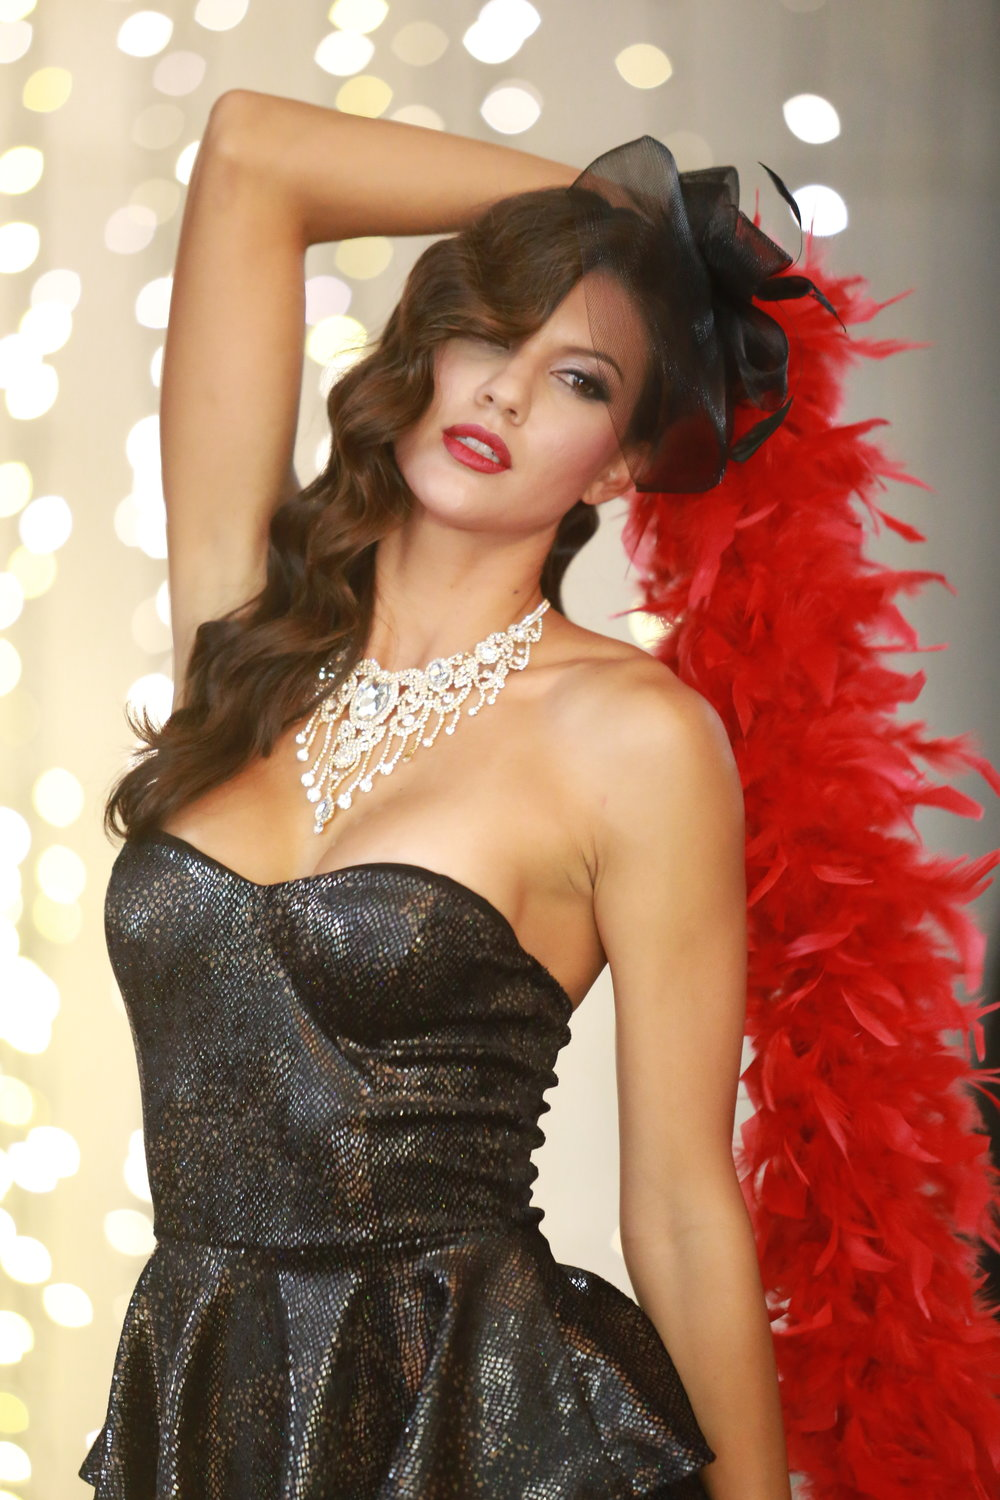 Beautiful model posing with a red feather boa in front of the Star Wall